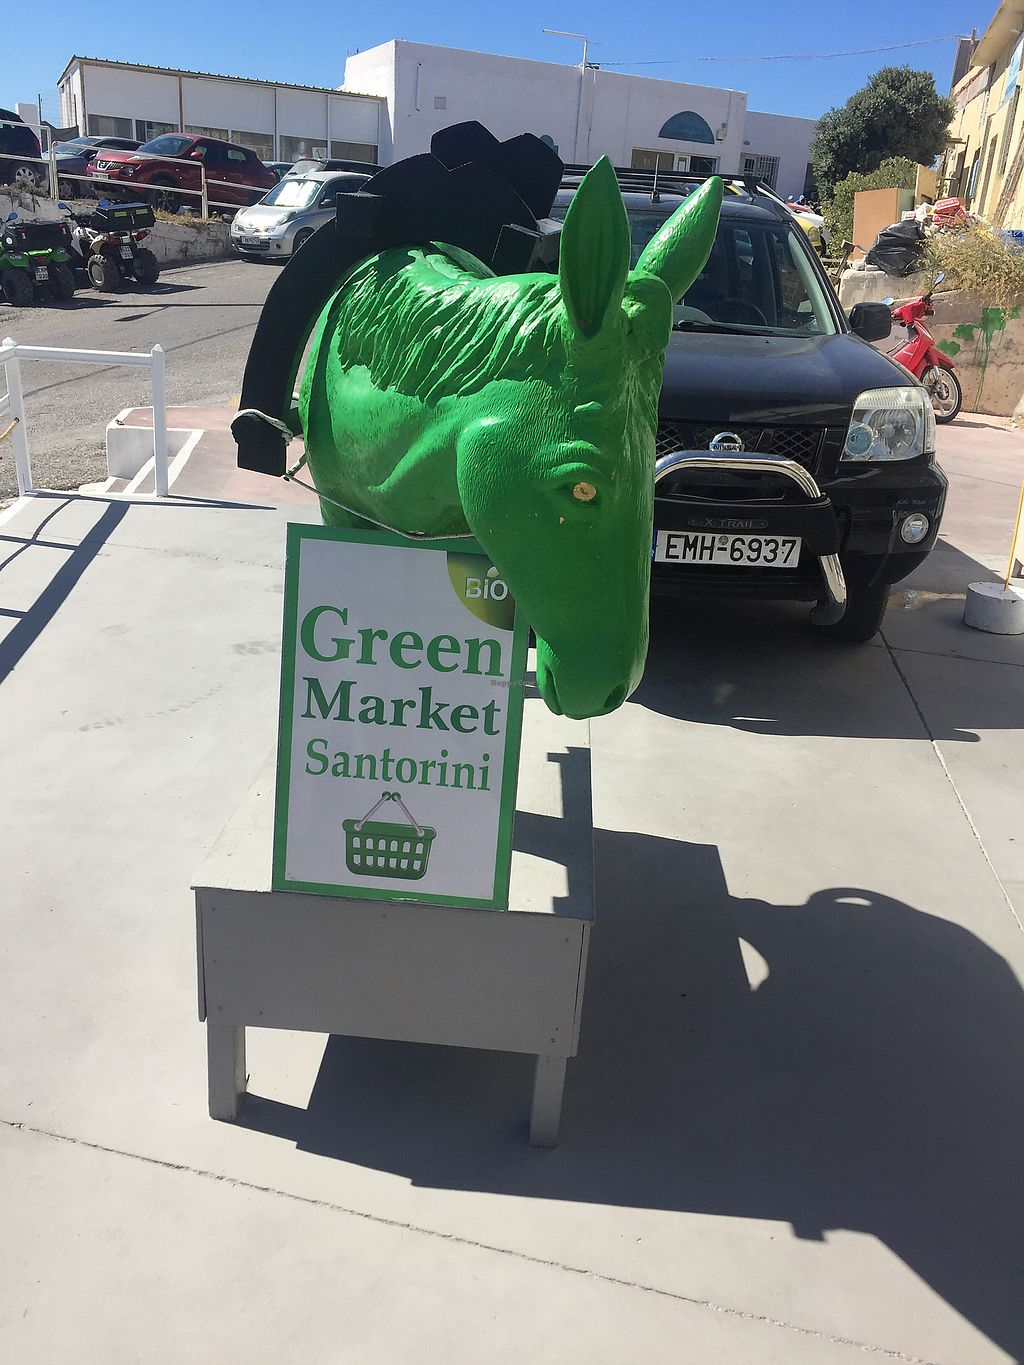 """Photo of Green Market  by <a href=""""/members/profile/SoniaJames"""">SoniaJames</a> <br/>outside The Green market <br/> September 7, 2017  - <a href='/contact/abuse/image/73940/301775'>Report</a>"""